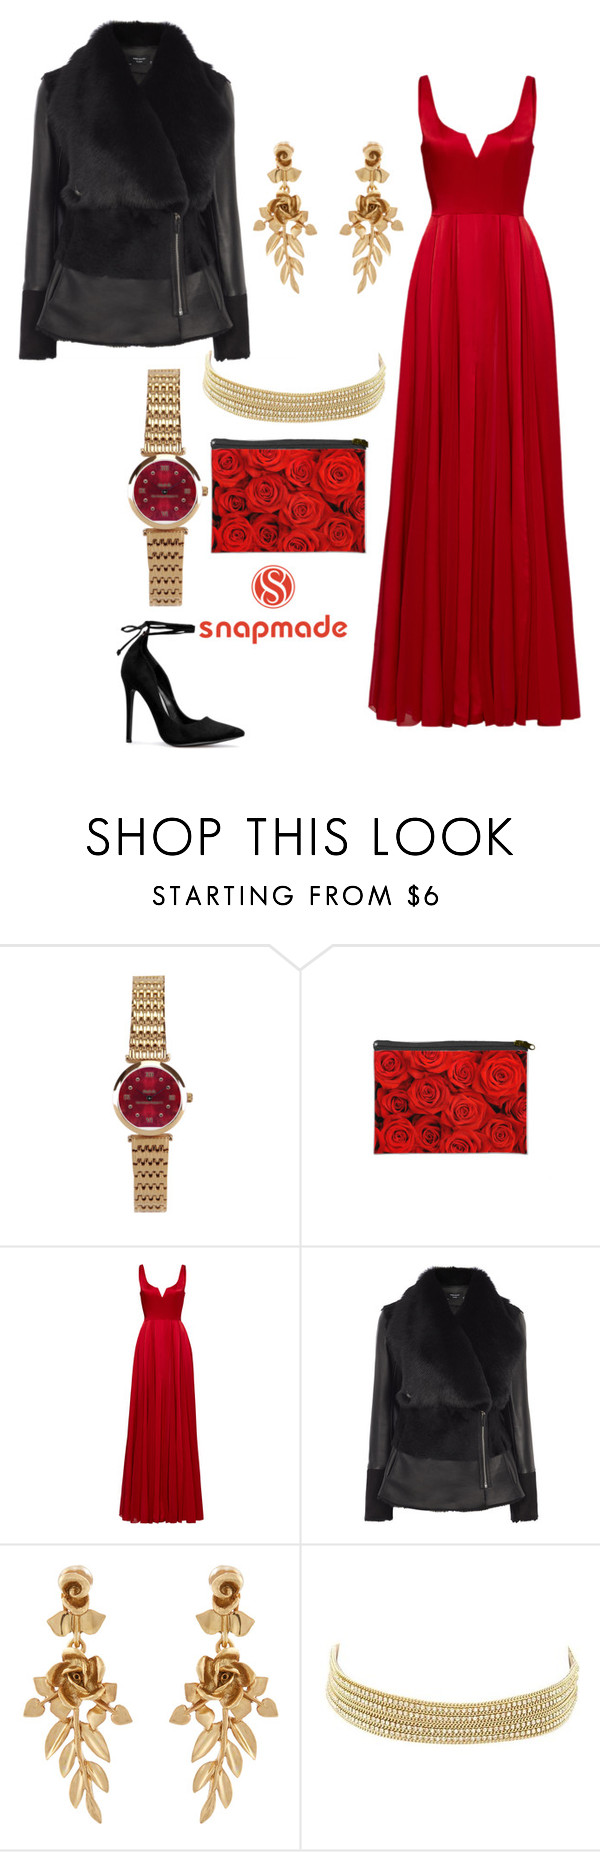 """Rose Red"" by amanda-o-twomey ❤ liked on Polyvore featuring Halston Heritage, Oscar de la Renta and Charlotte Russe"